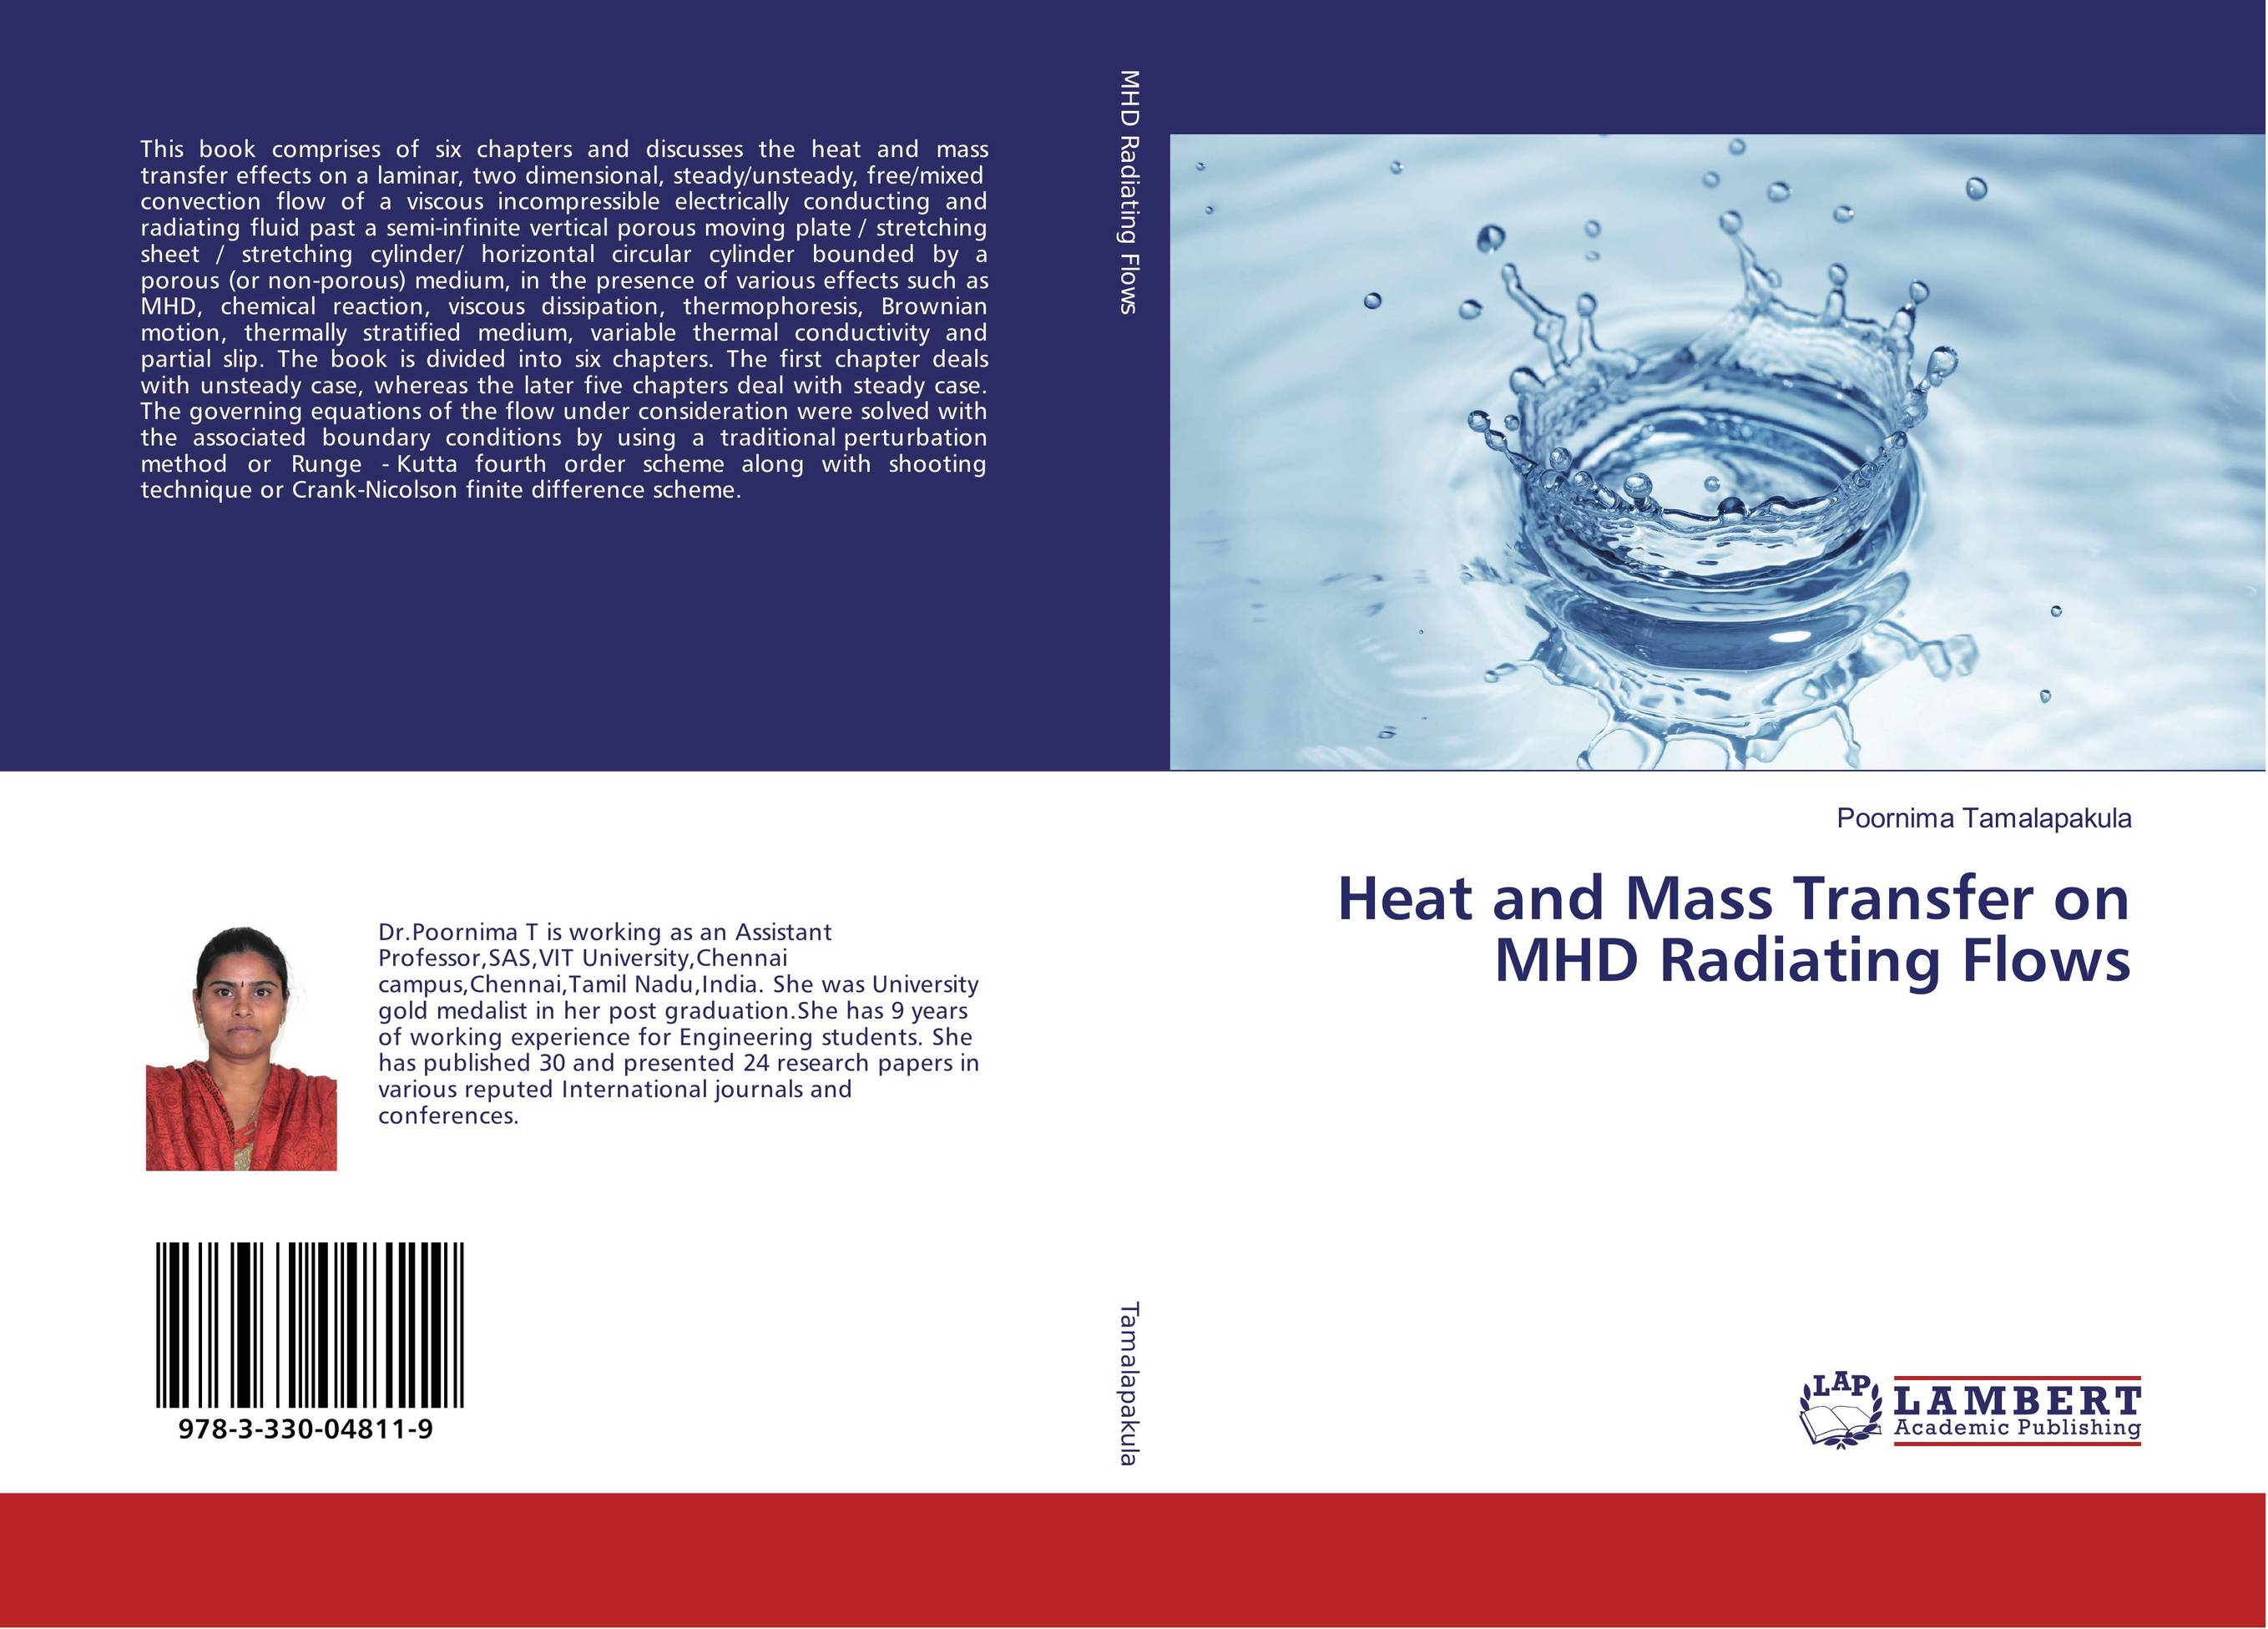 mhd natural convection flow of fluids Mhd free convection flow past an impulsively started infinite vertical plate with thermal stratification and radiation mhd natural convection flow exposed.